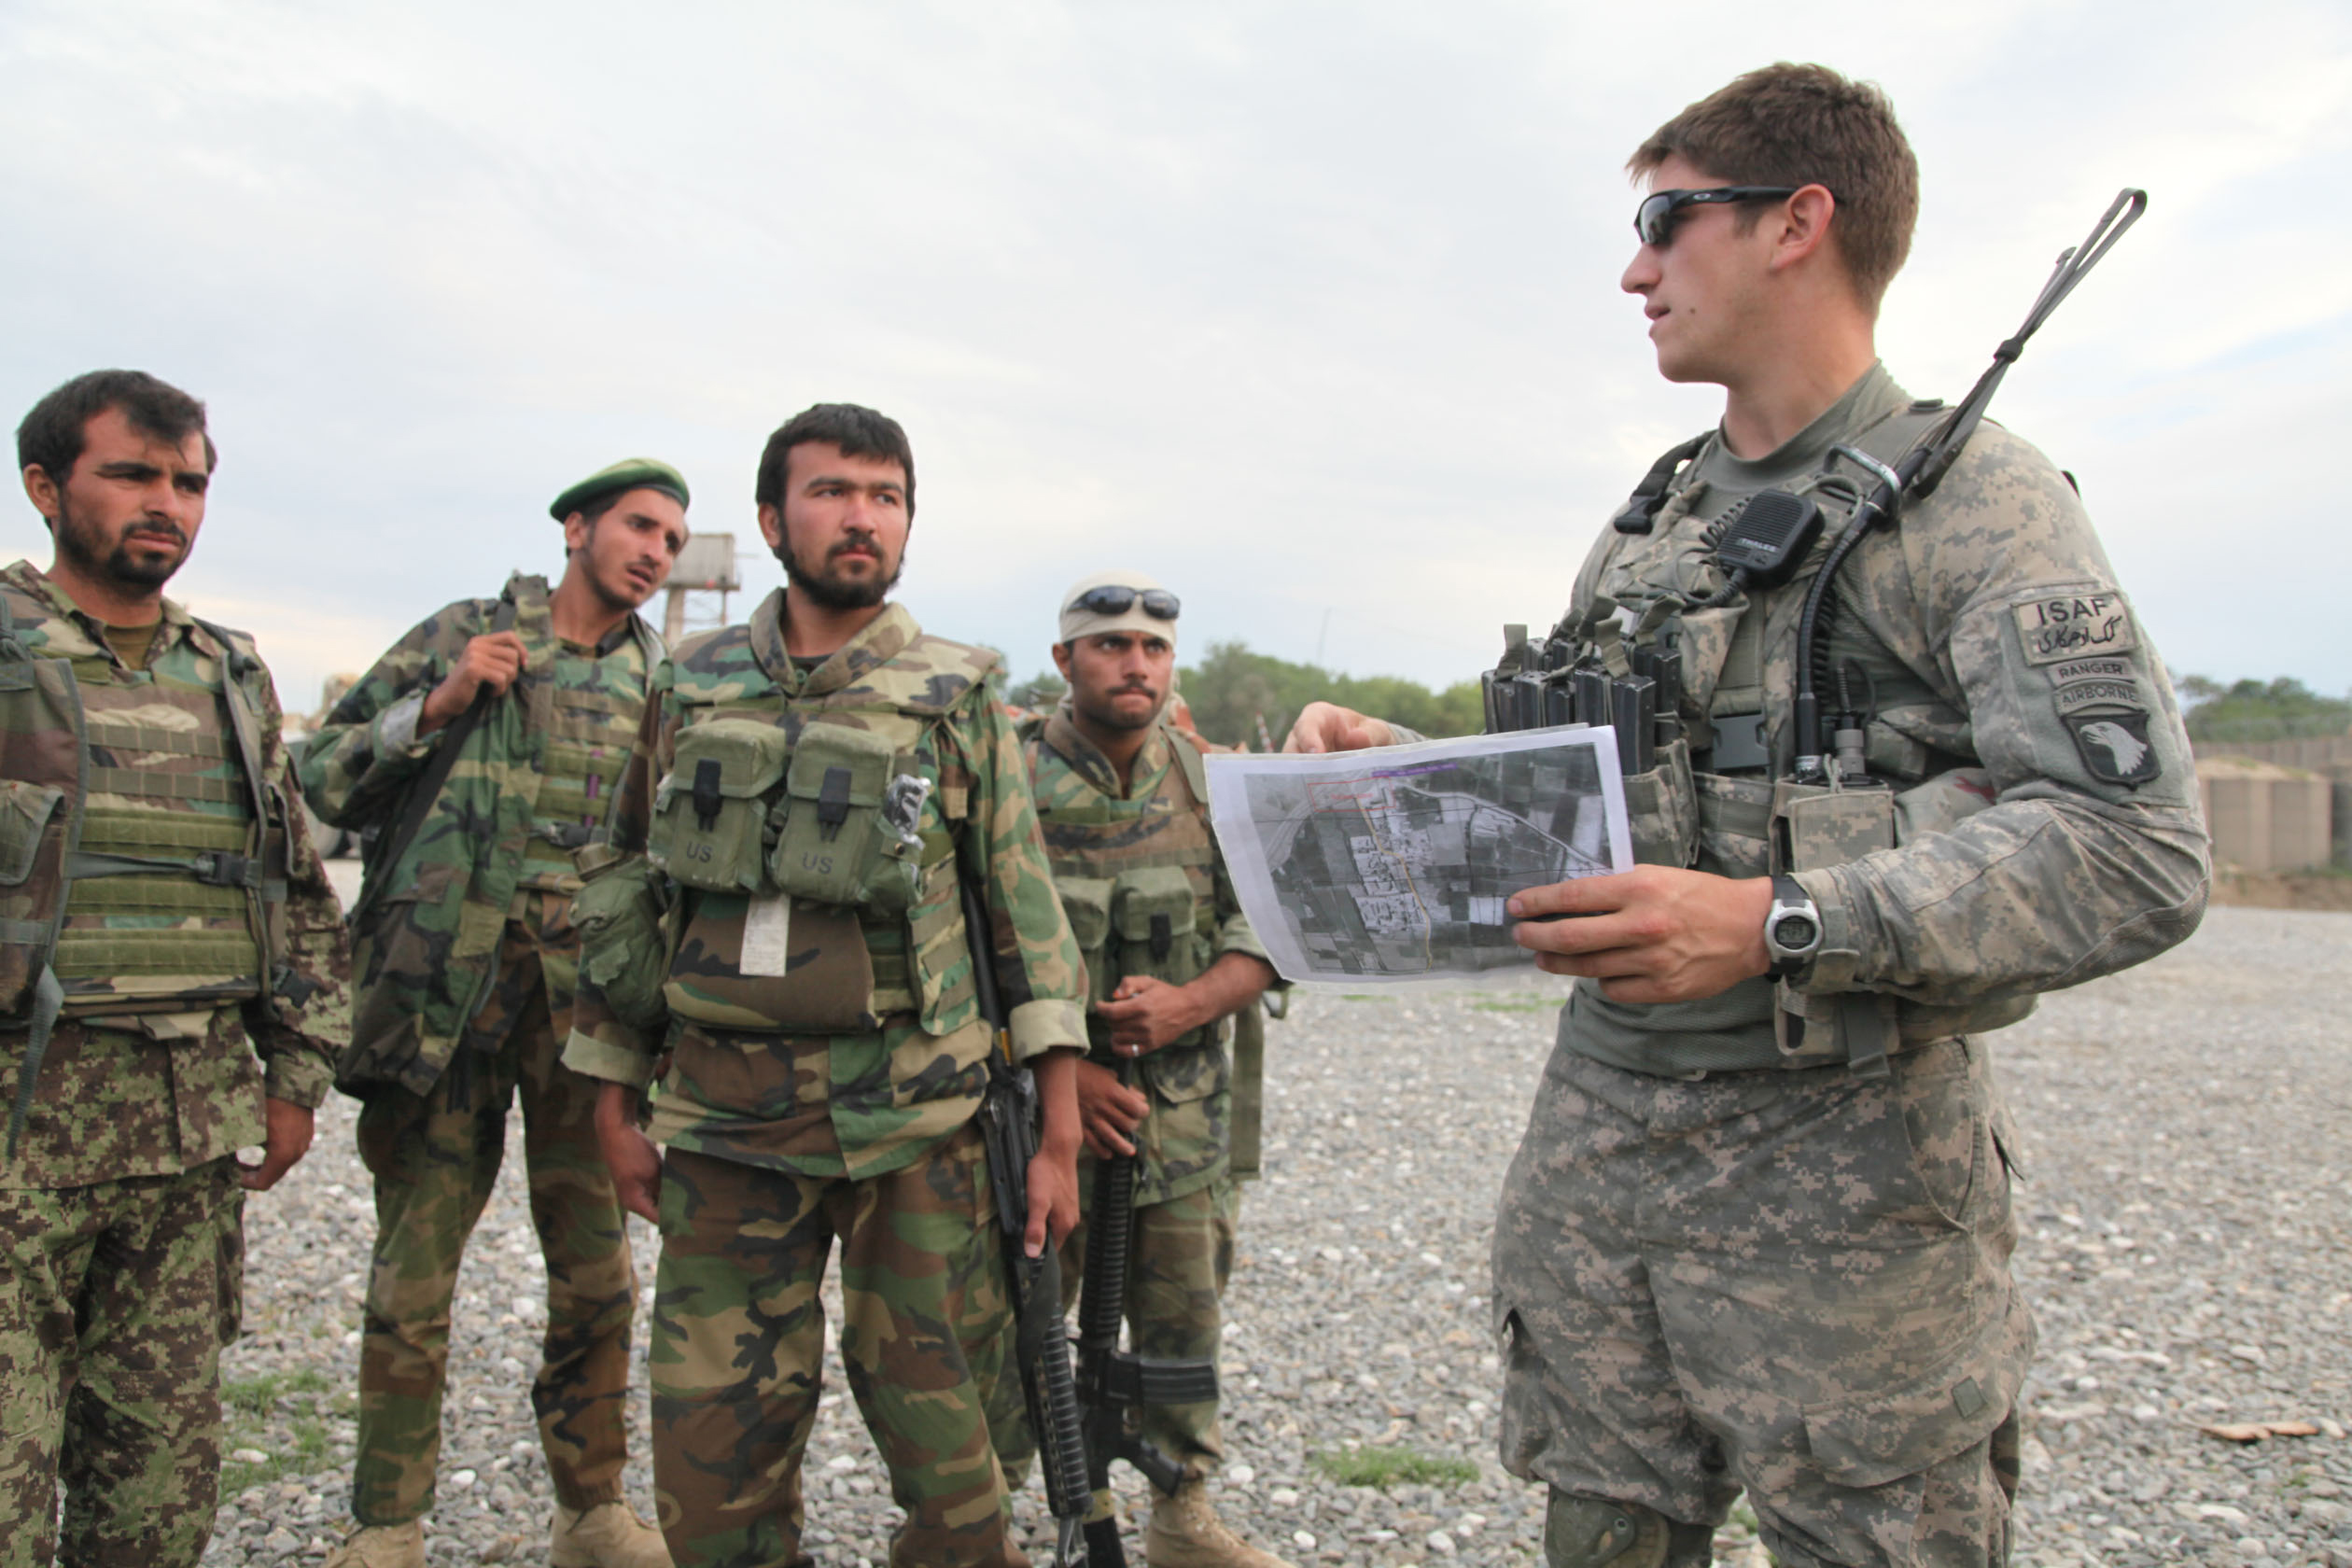 file:u.s. army platoon leader gives a briefing to soldiers from the